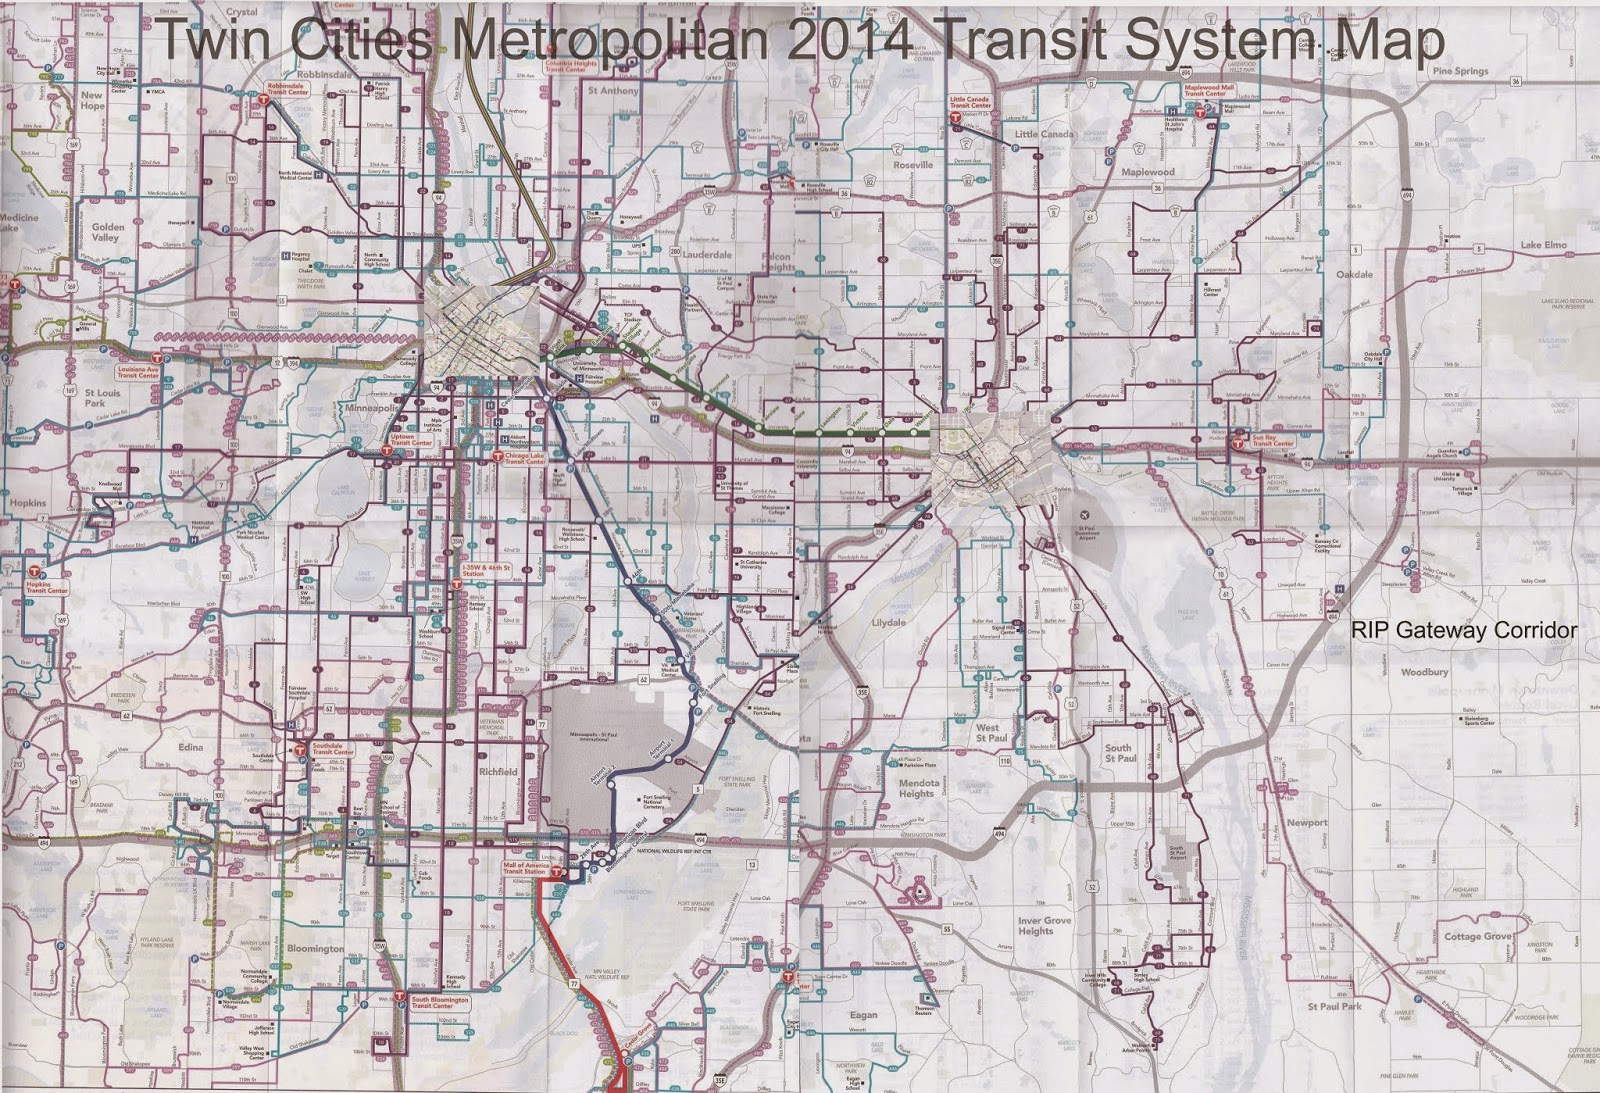 Twin Cities Metropolitan Area Transit System Map 2014